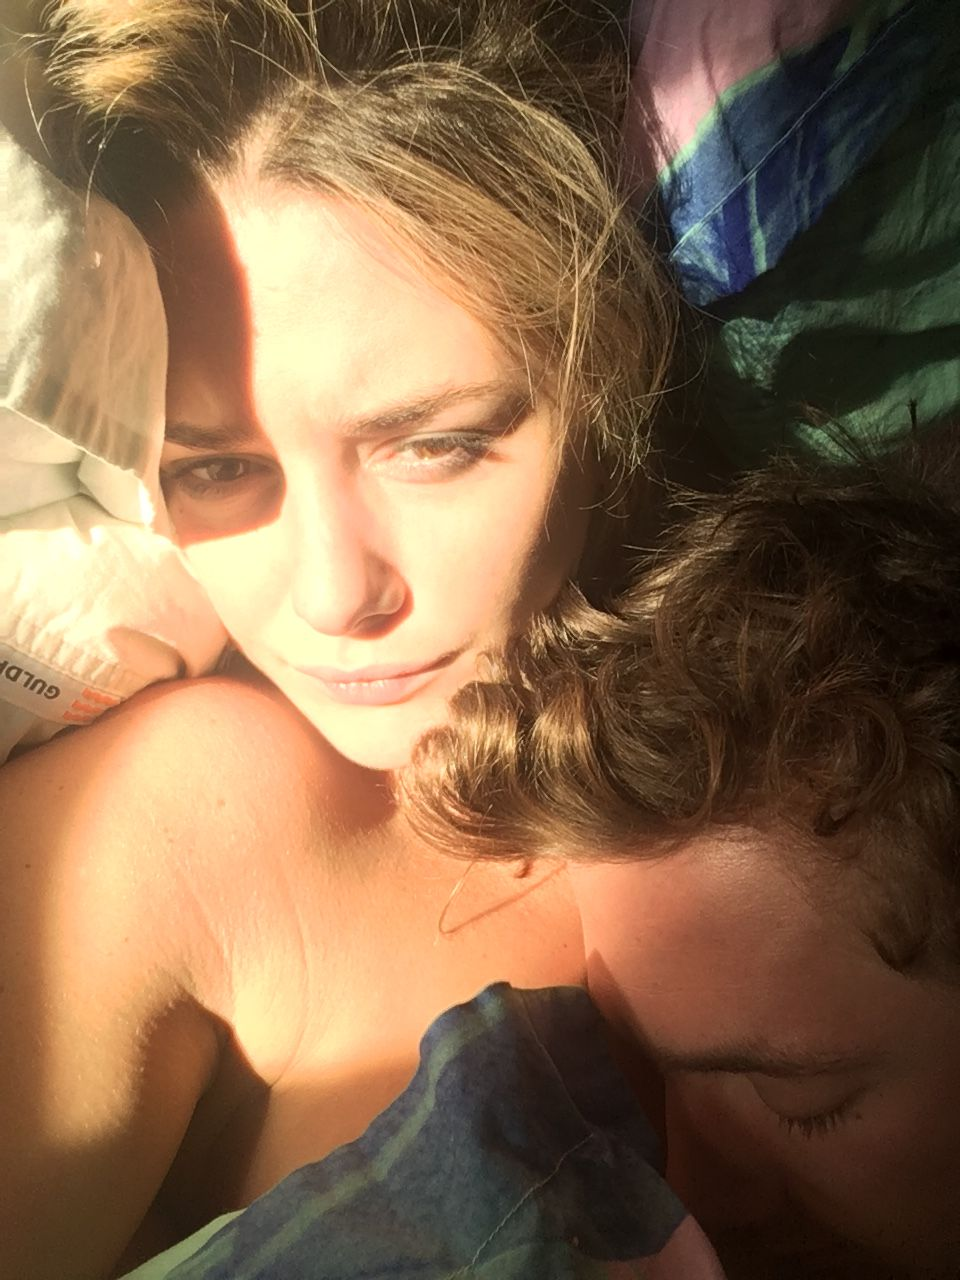 Addison-Timlin-Leaked-1-thefappening_nu_481bd74.jpg